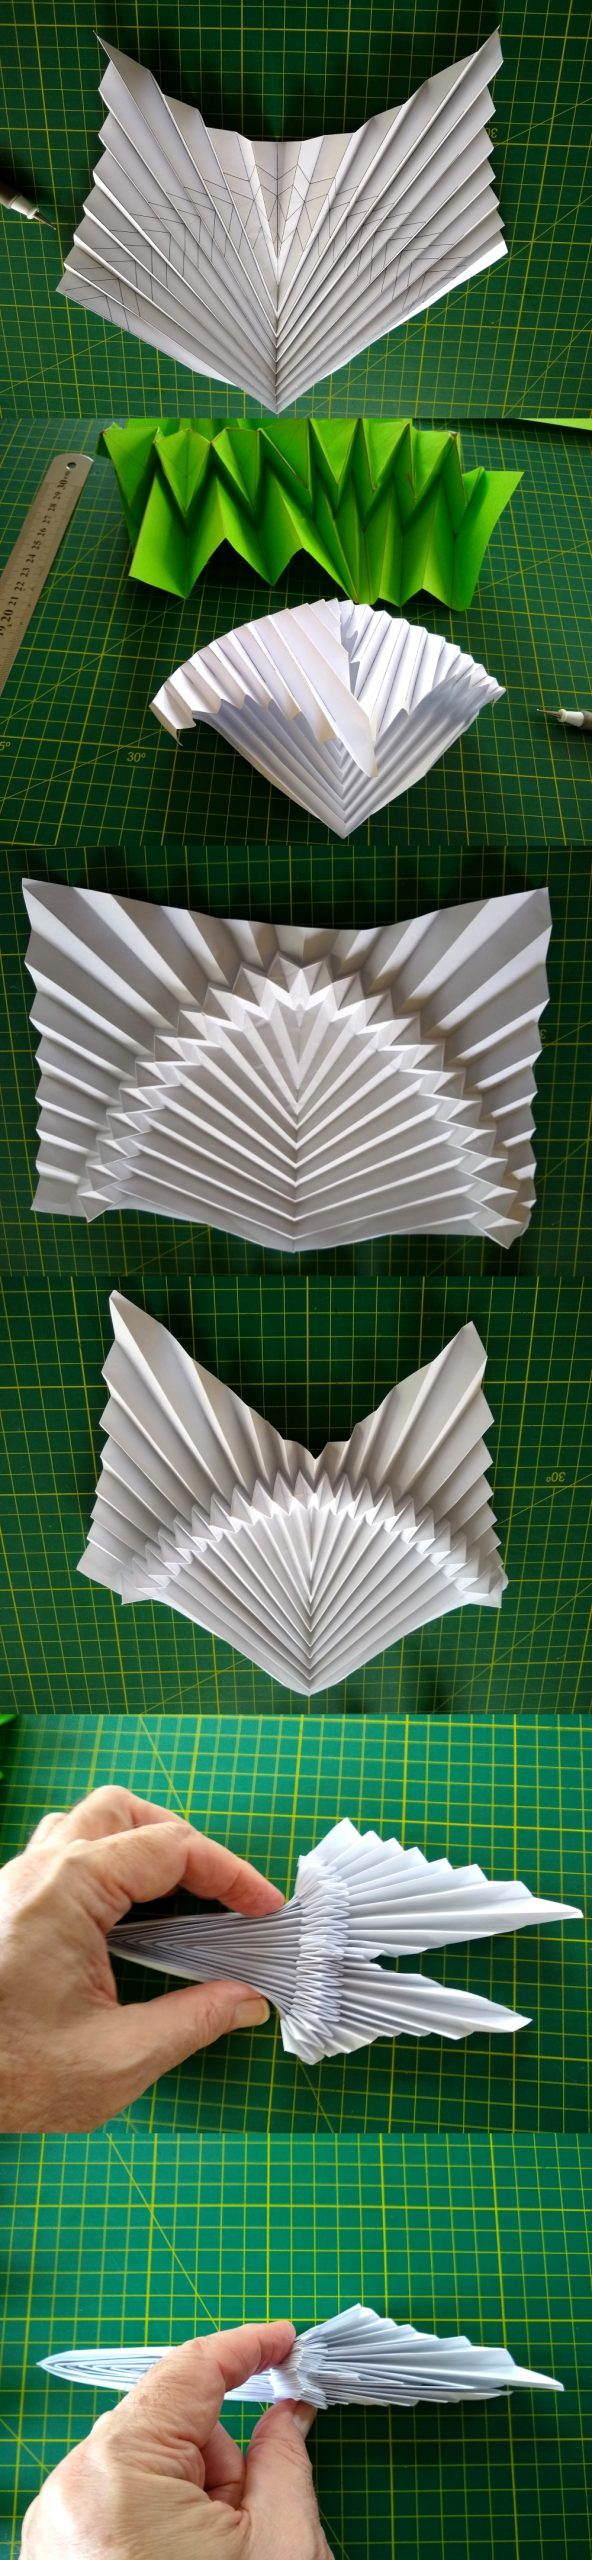 Flat-folding Curve-following Parabolic Corrugation development